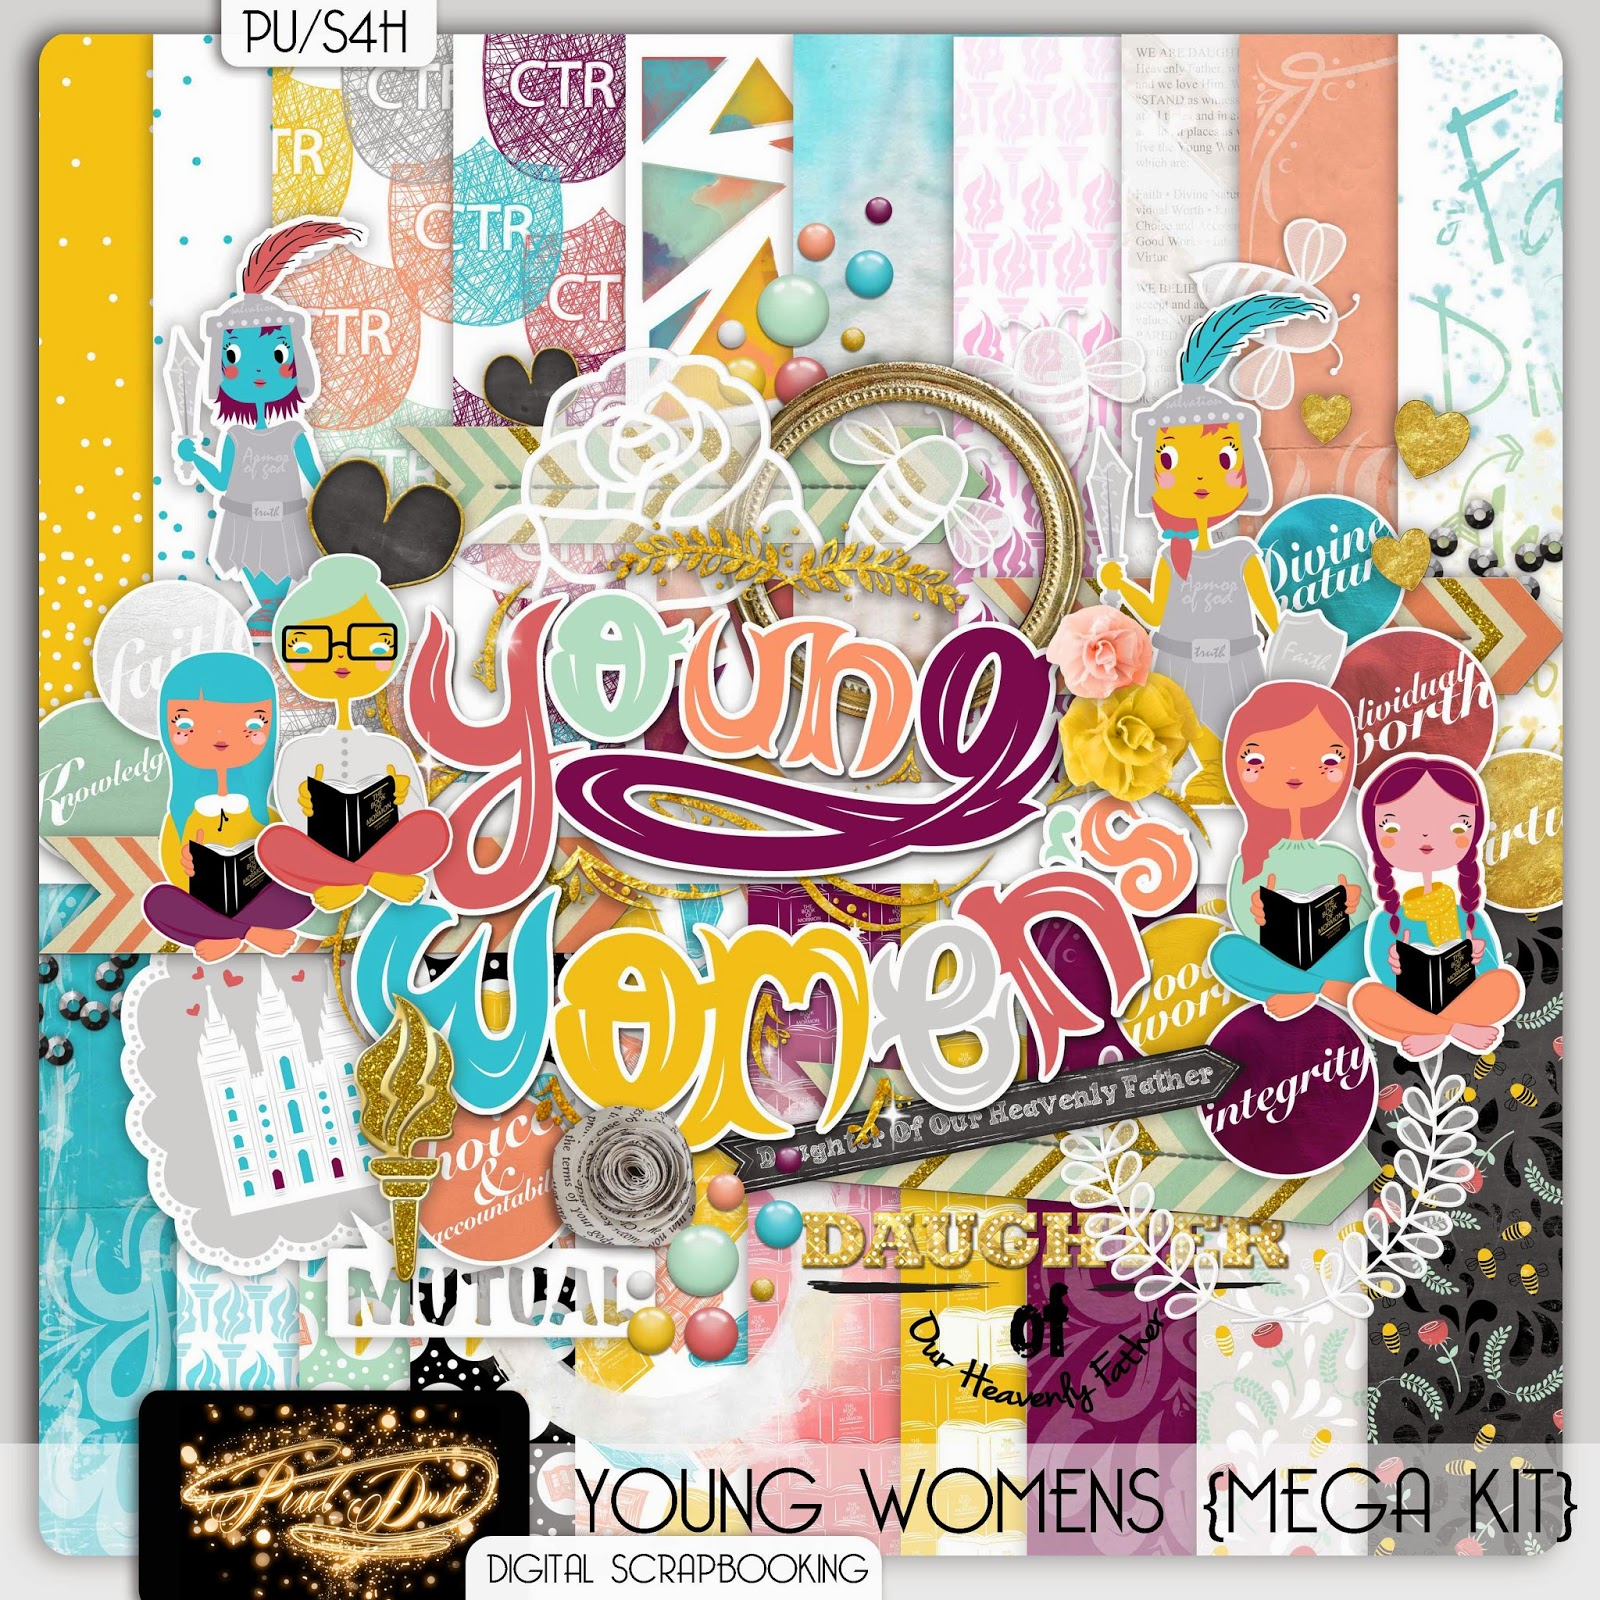 Scrapbook ideas download free - Its Been A Long Time Coming For This Young Women S Kit I Originally Got The Idea To Do This Kit Over A Year Ago And Just Recently I Finally Got To Work